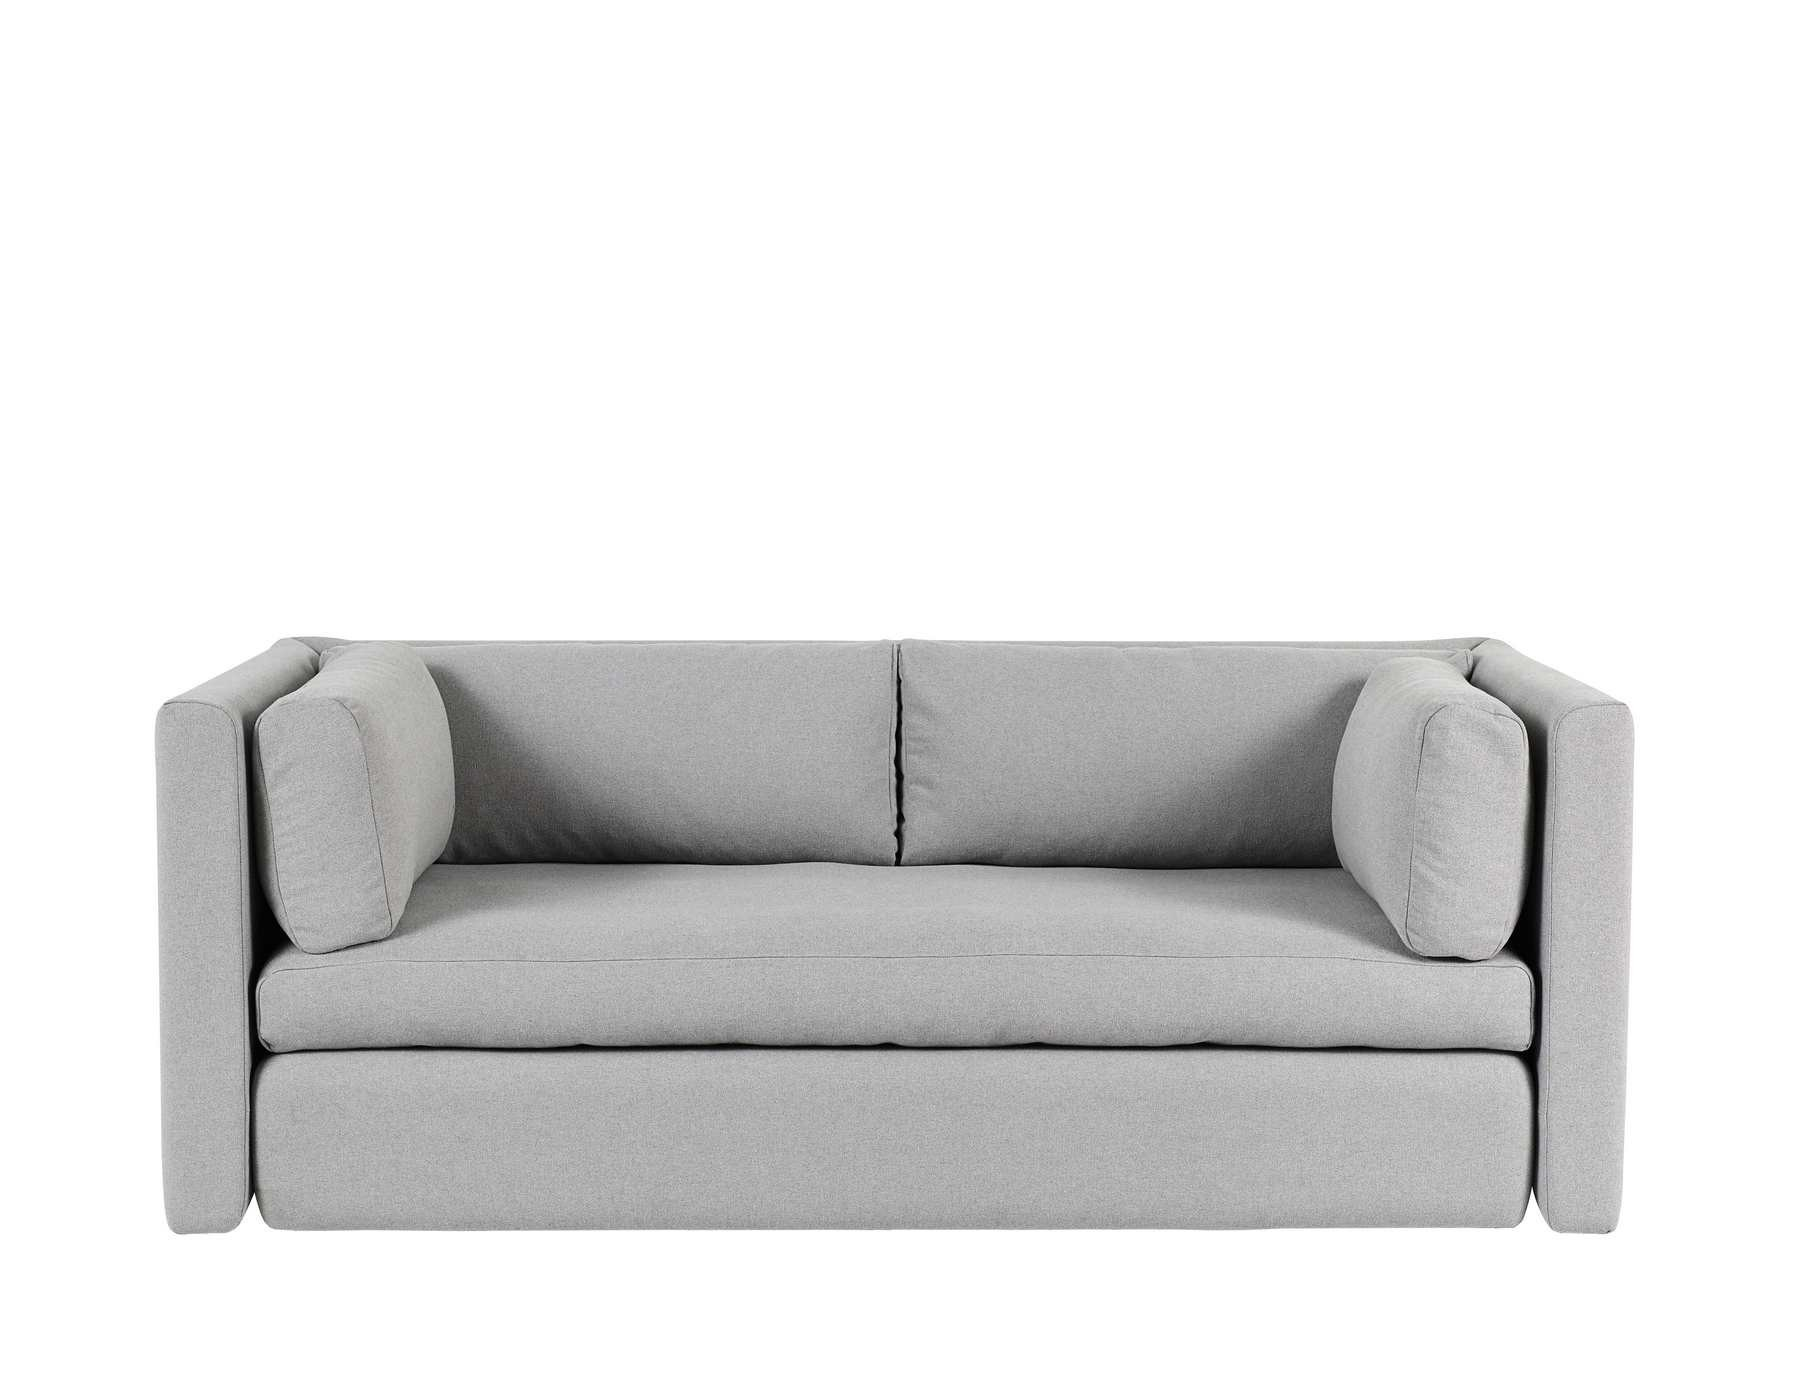 Sofa Zweisitzer Wrong For Hay Hackney Sofa Zweisitzer